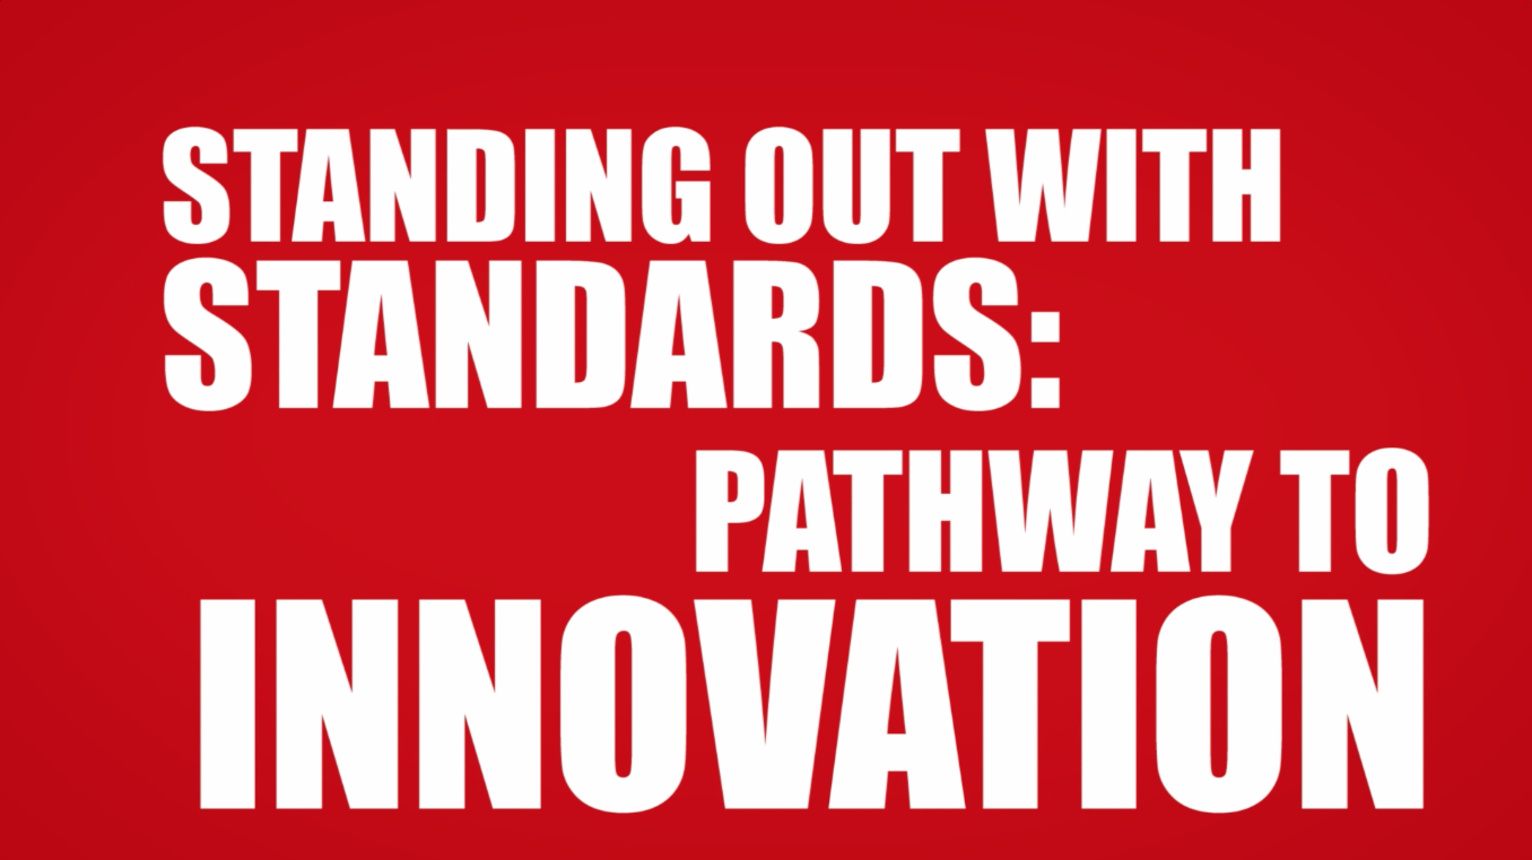 Pathway to Innovation: Standing Out with Standards